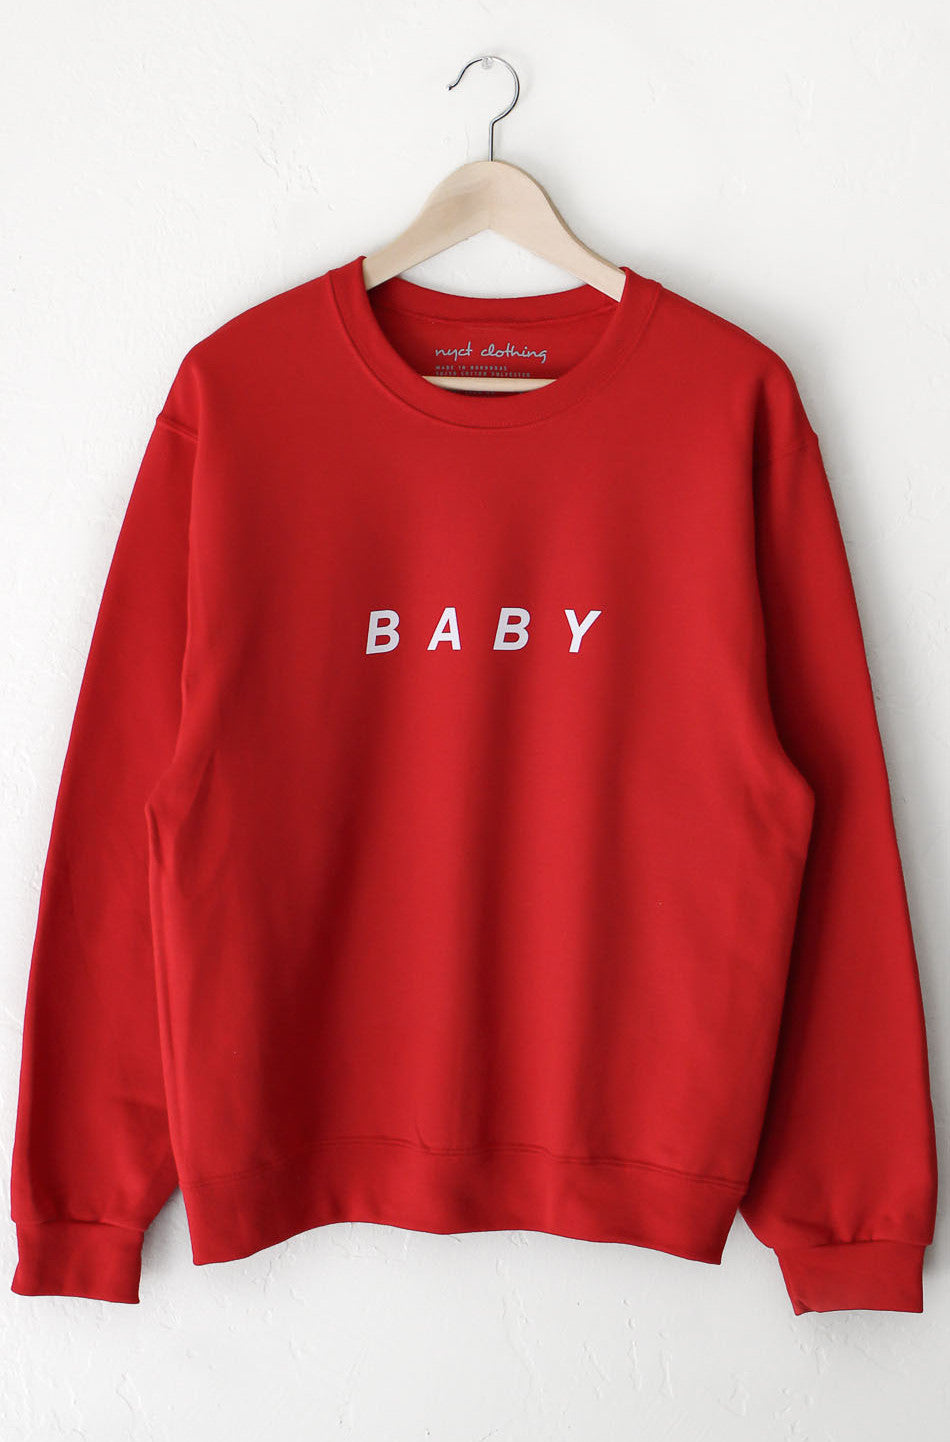 NYCT Clothing Baby Sweater